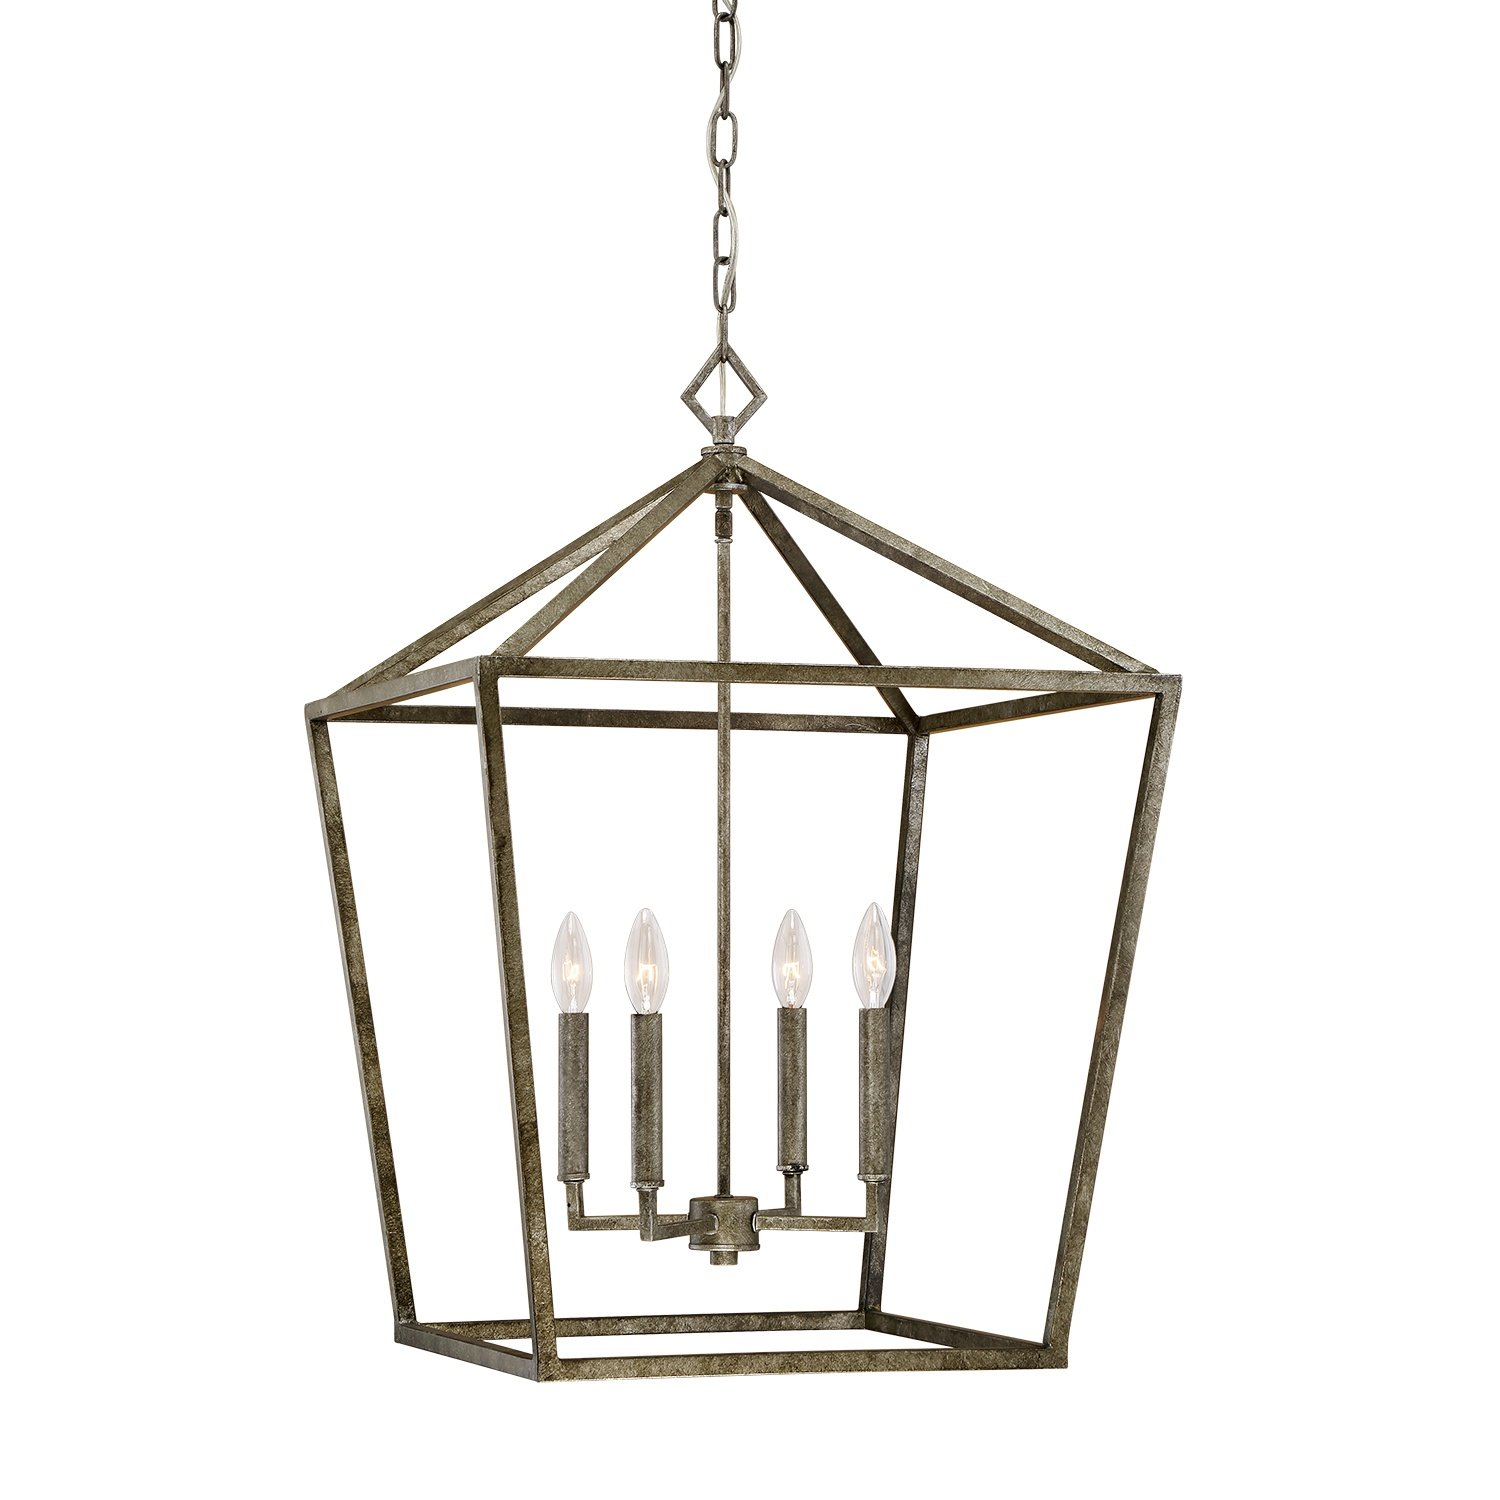 id brass lantern l pendant neoclassic lanterns furniture italian f img bronzed light hall for sale at lighting